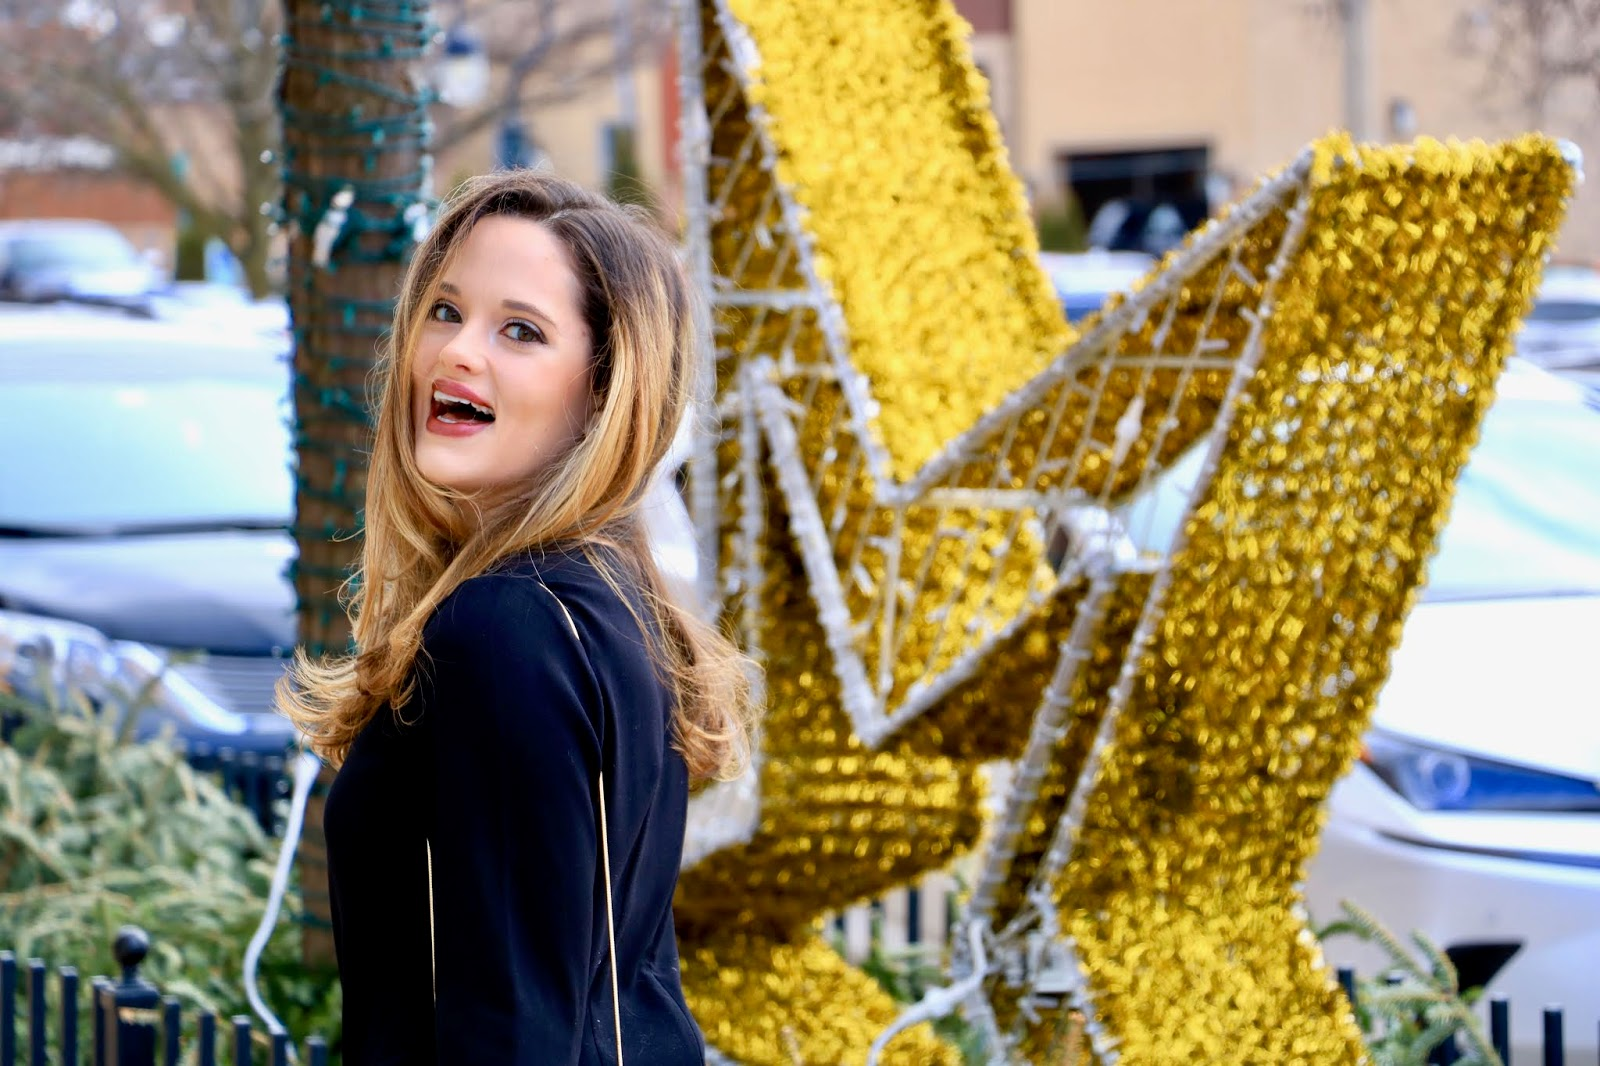 Nyc fashion blogger Kathleen Harper on New Year's Eve